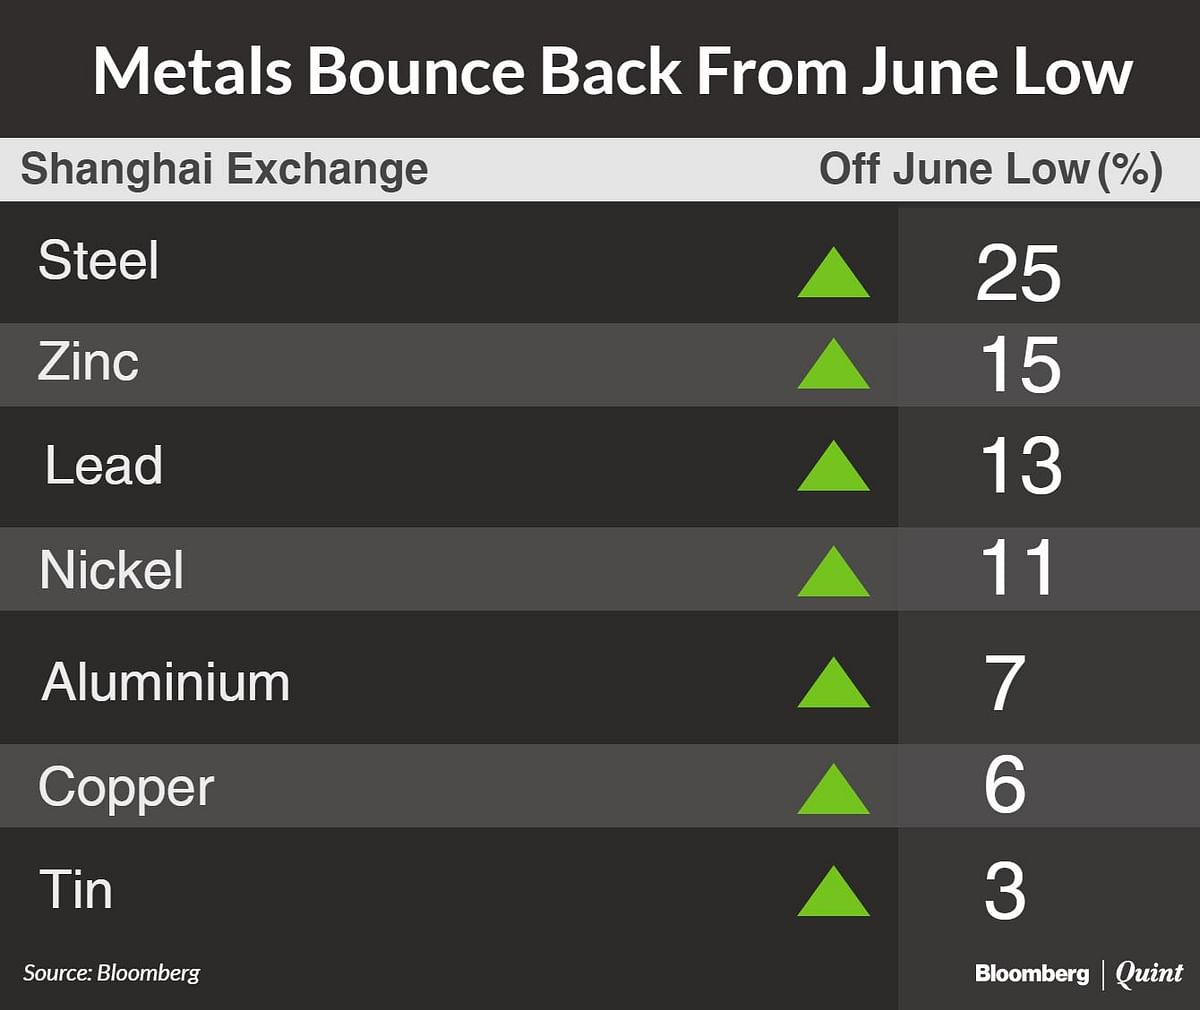 Metals Bounce Back From June Low